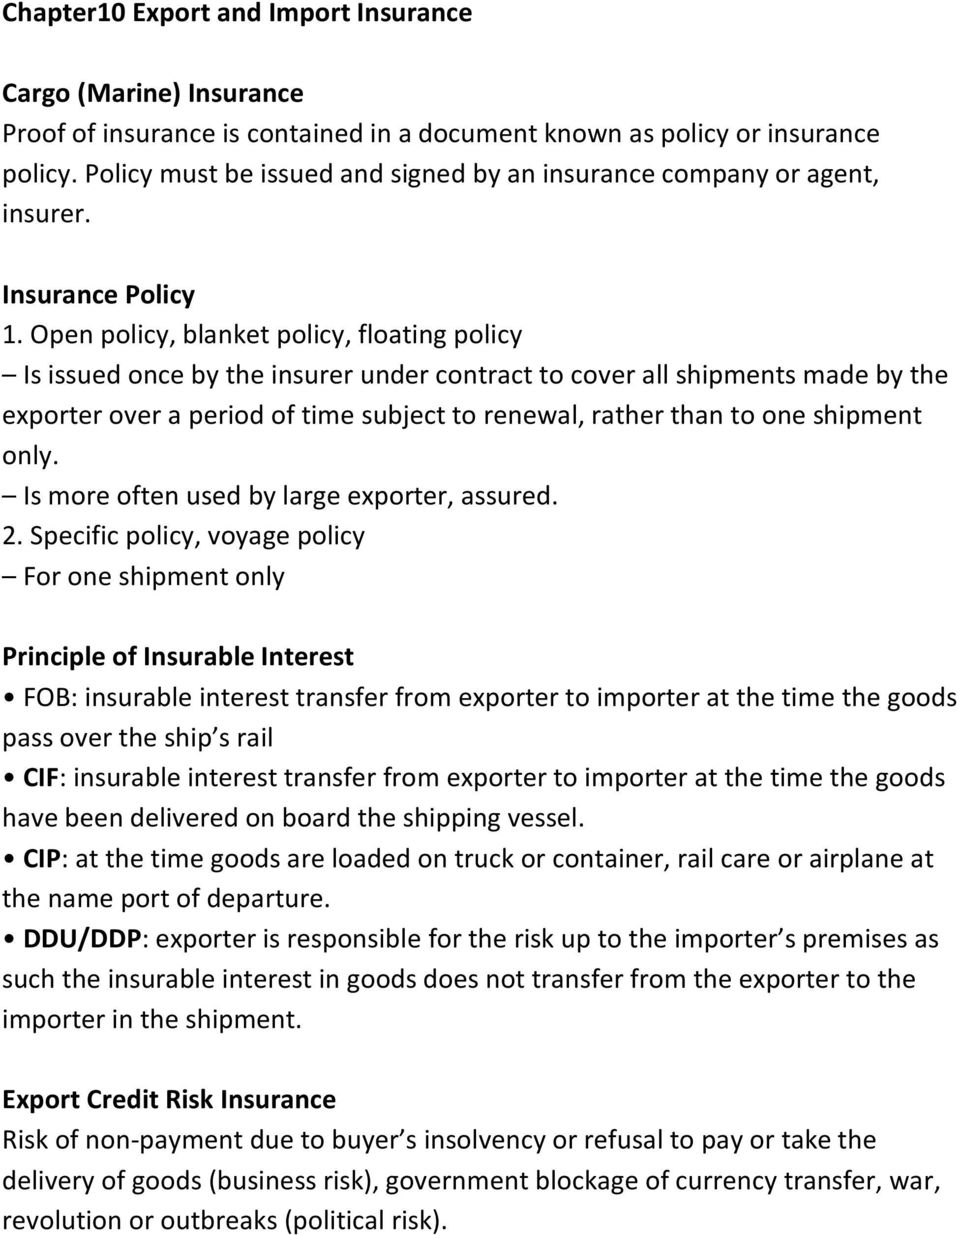 Open policy, blanket policy, floating policy Is issued once by the insurer under contract to cover all shipments made by the exporter over a period of time subject to renewal, rather than to one